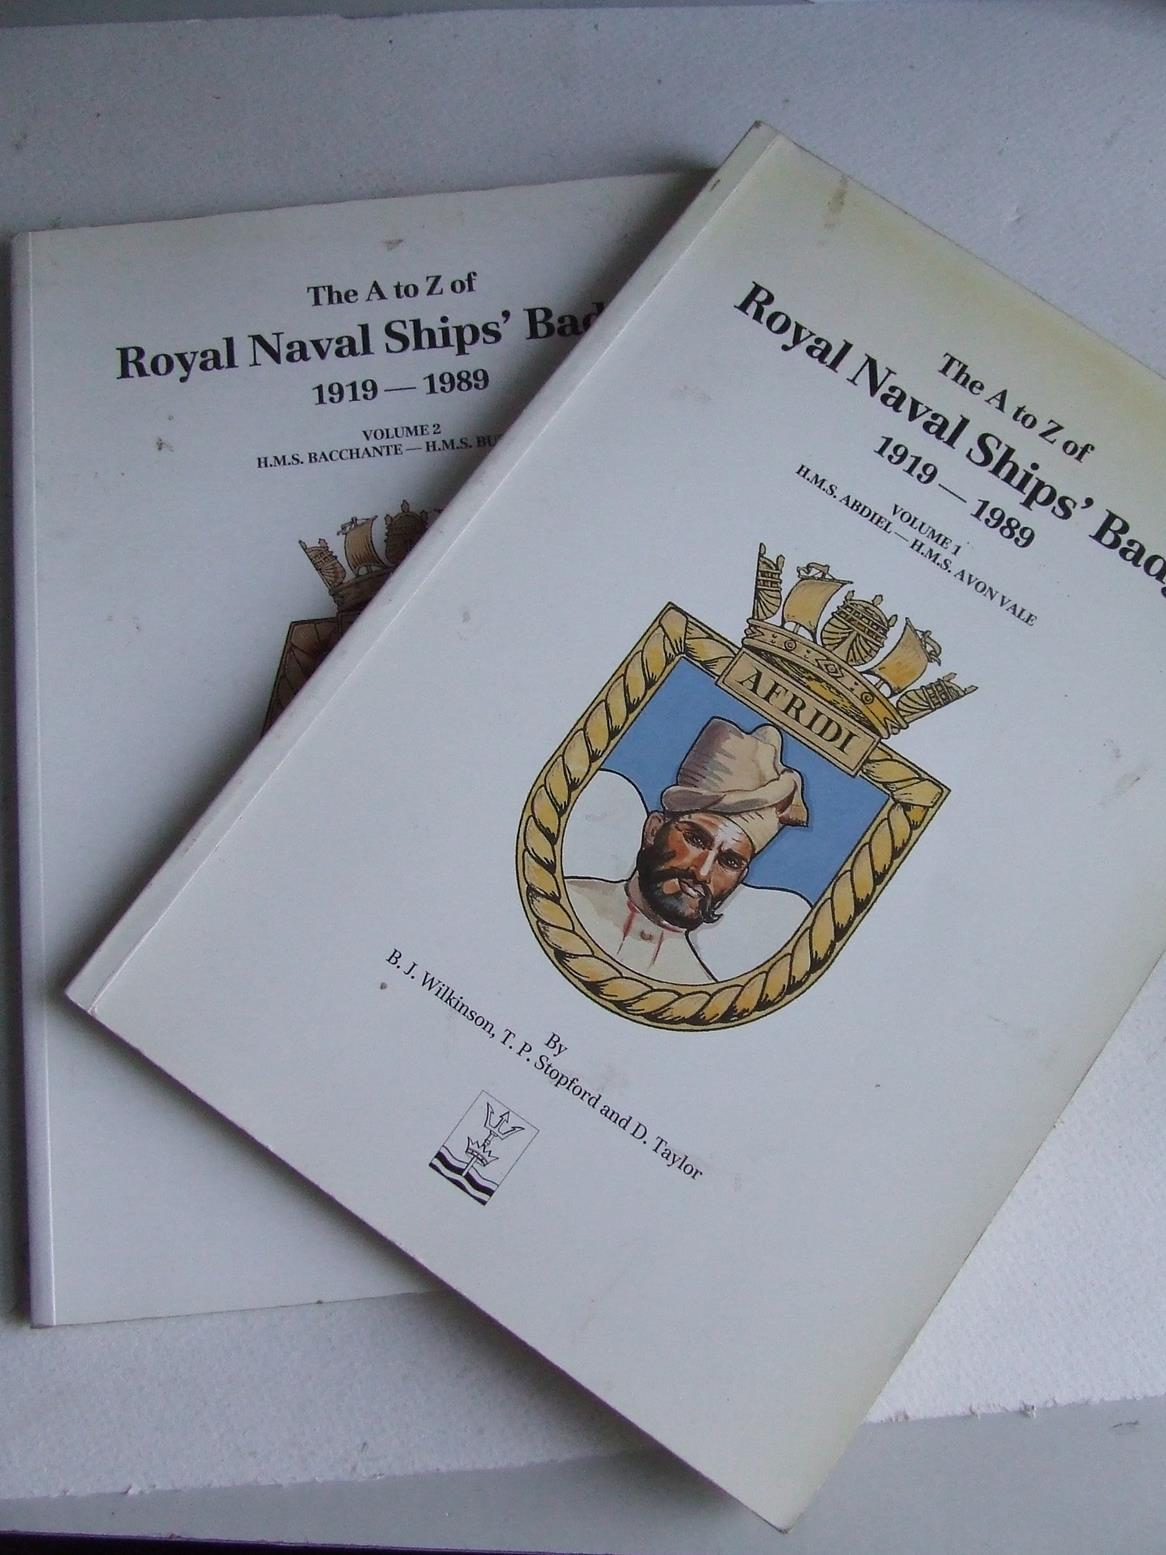 The A to Z of Royal Naval Ships' Badges 1919-1989